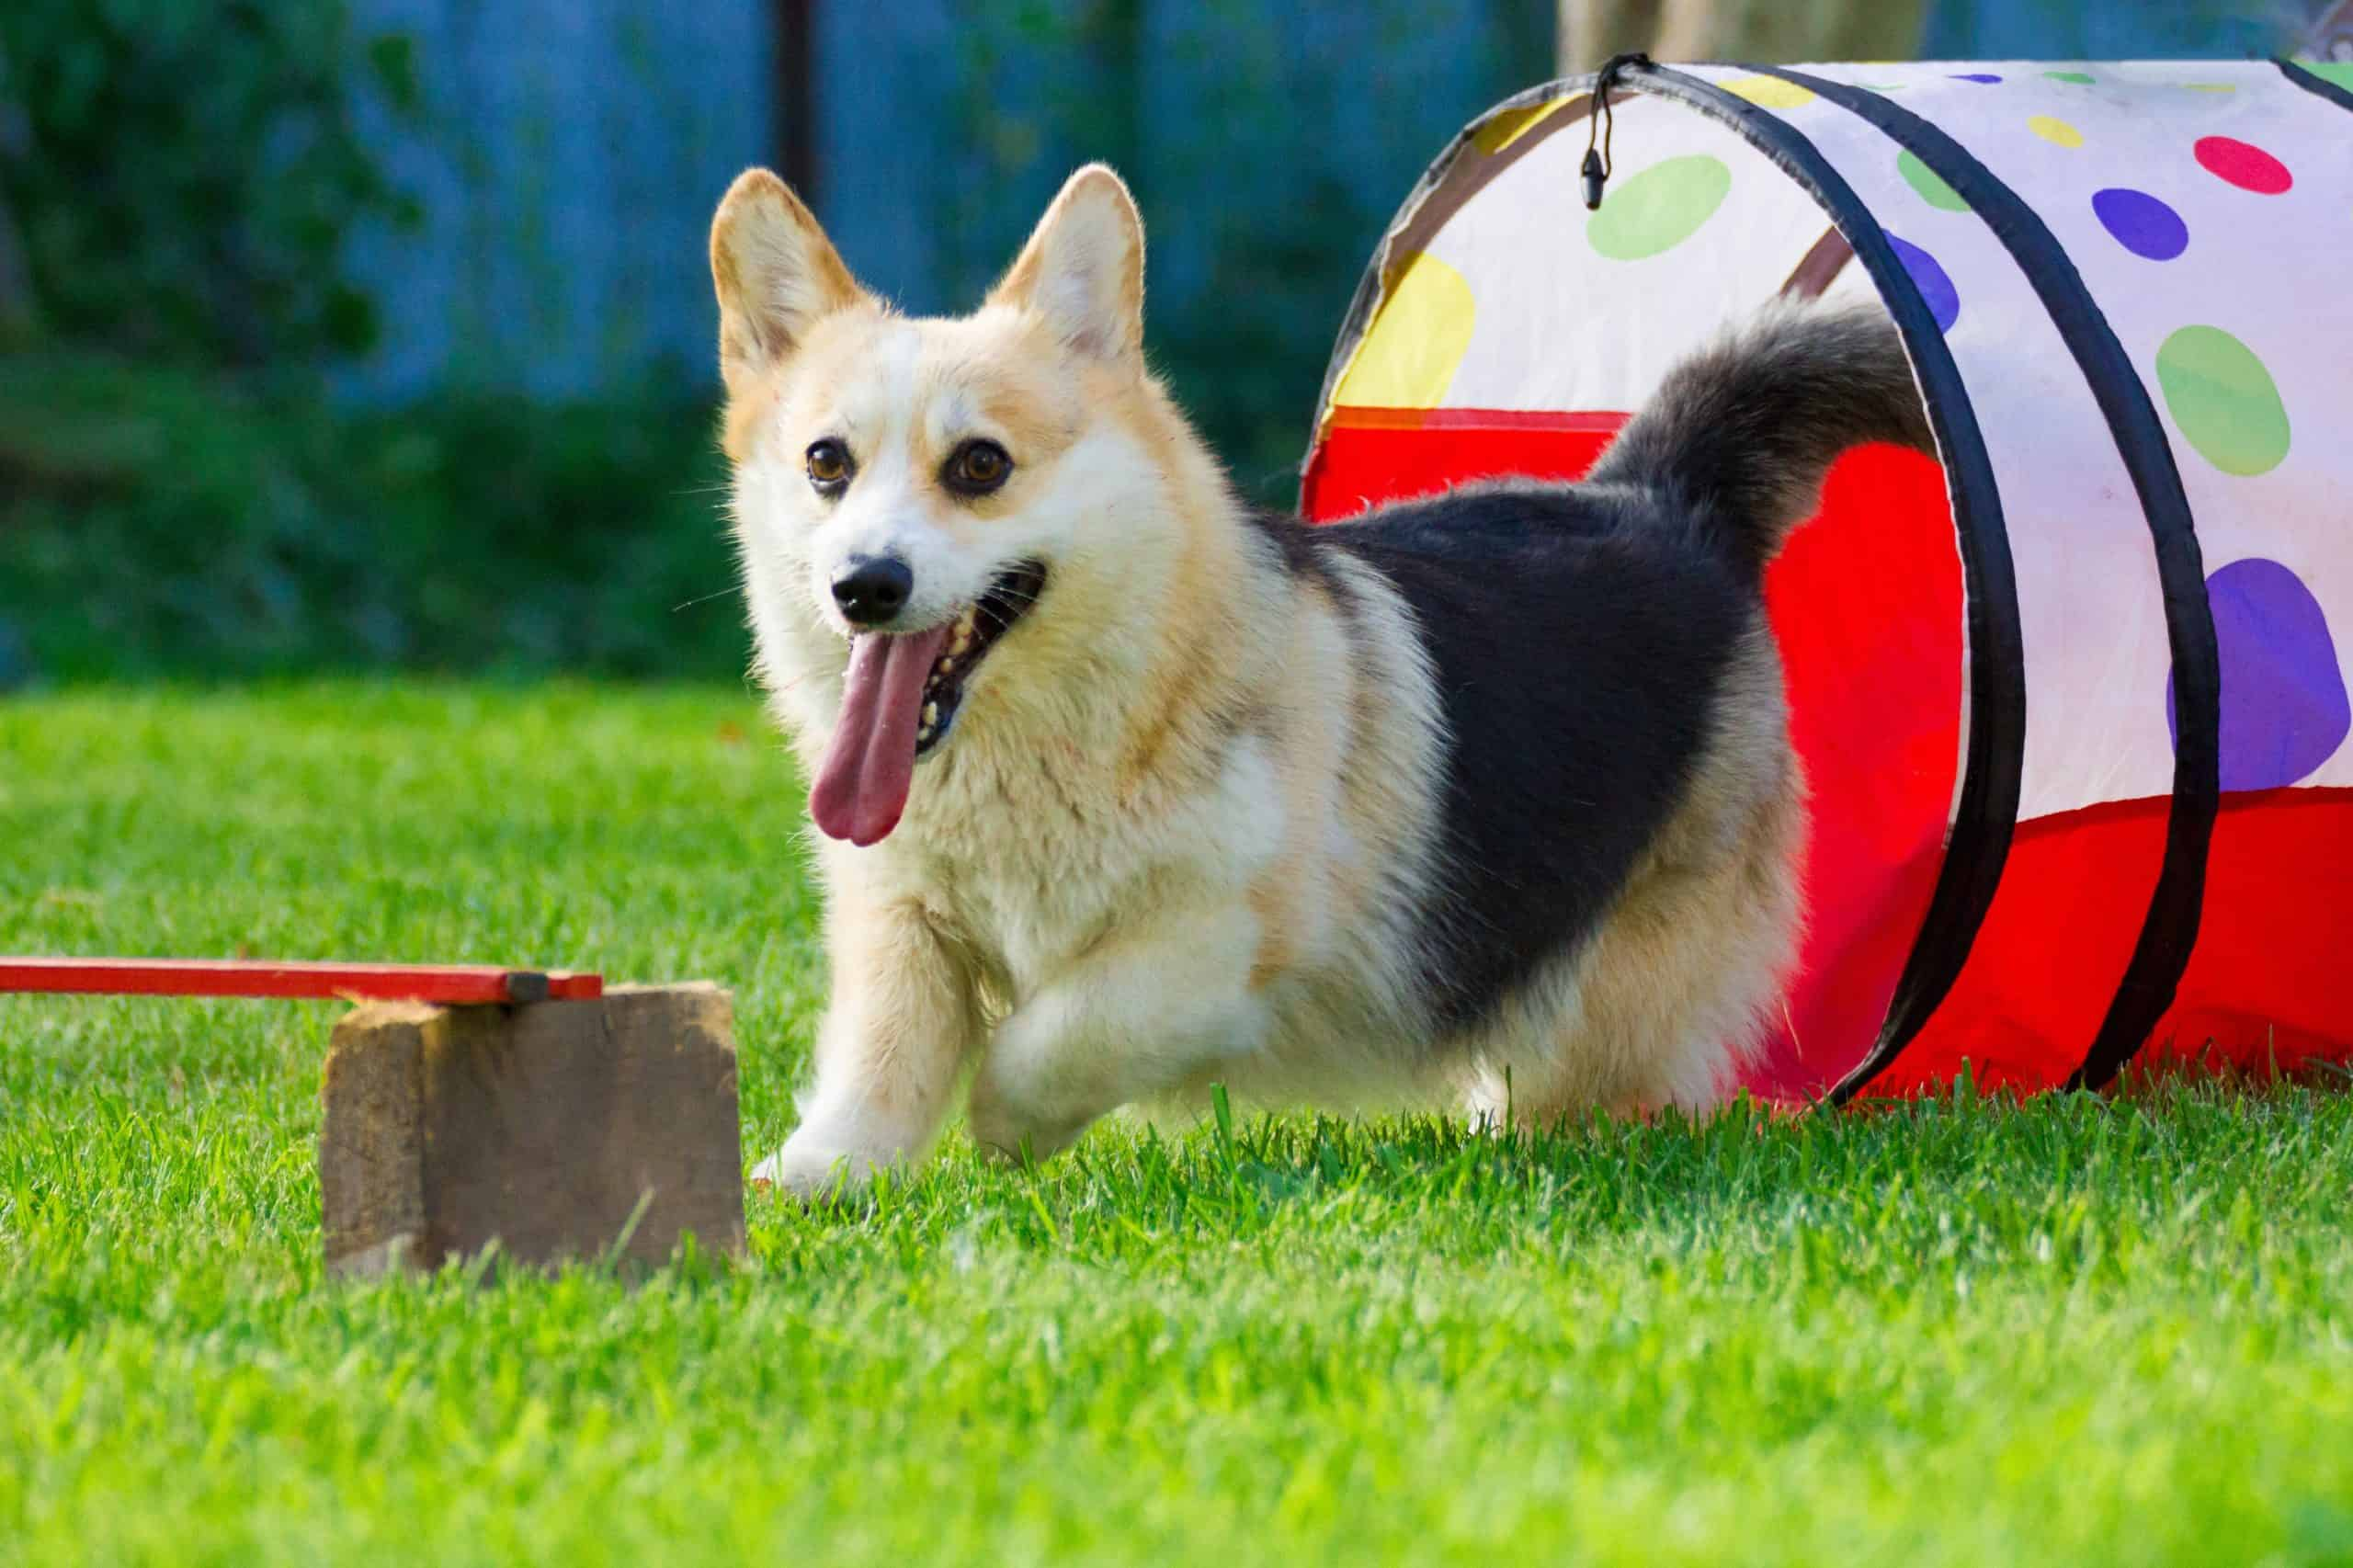 Happy corgi exits dog agility training tunnel.